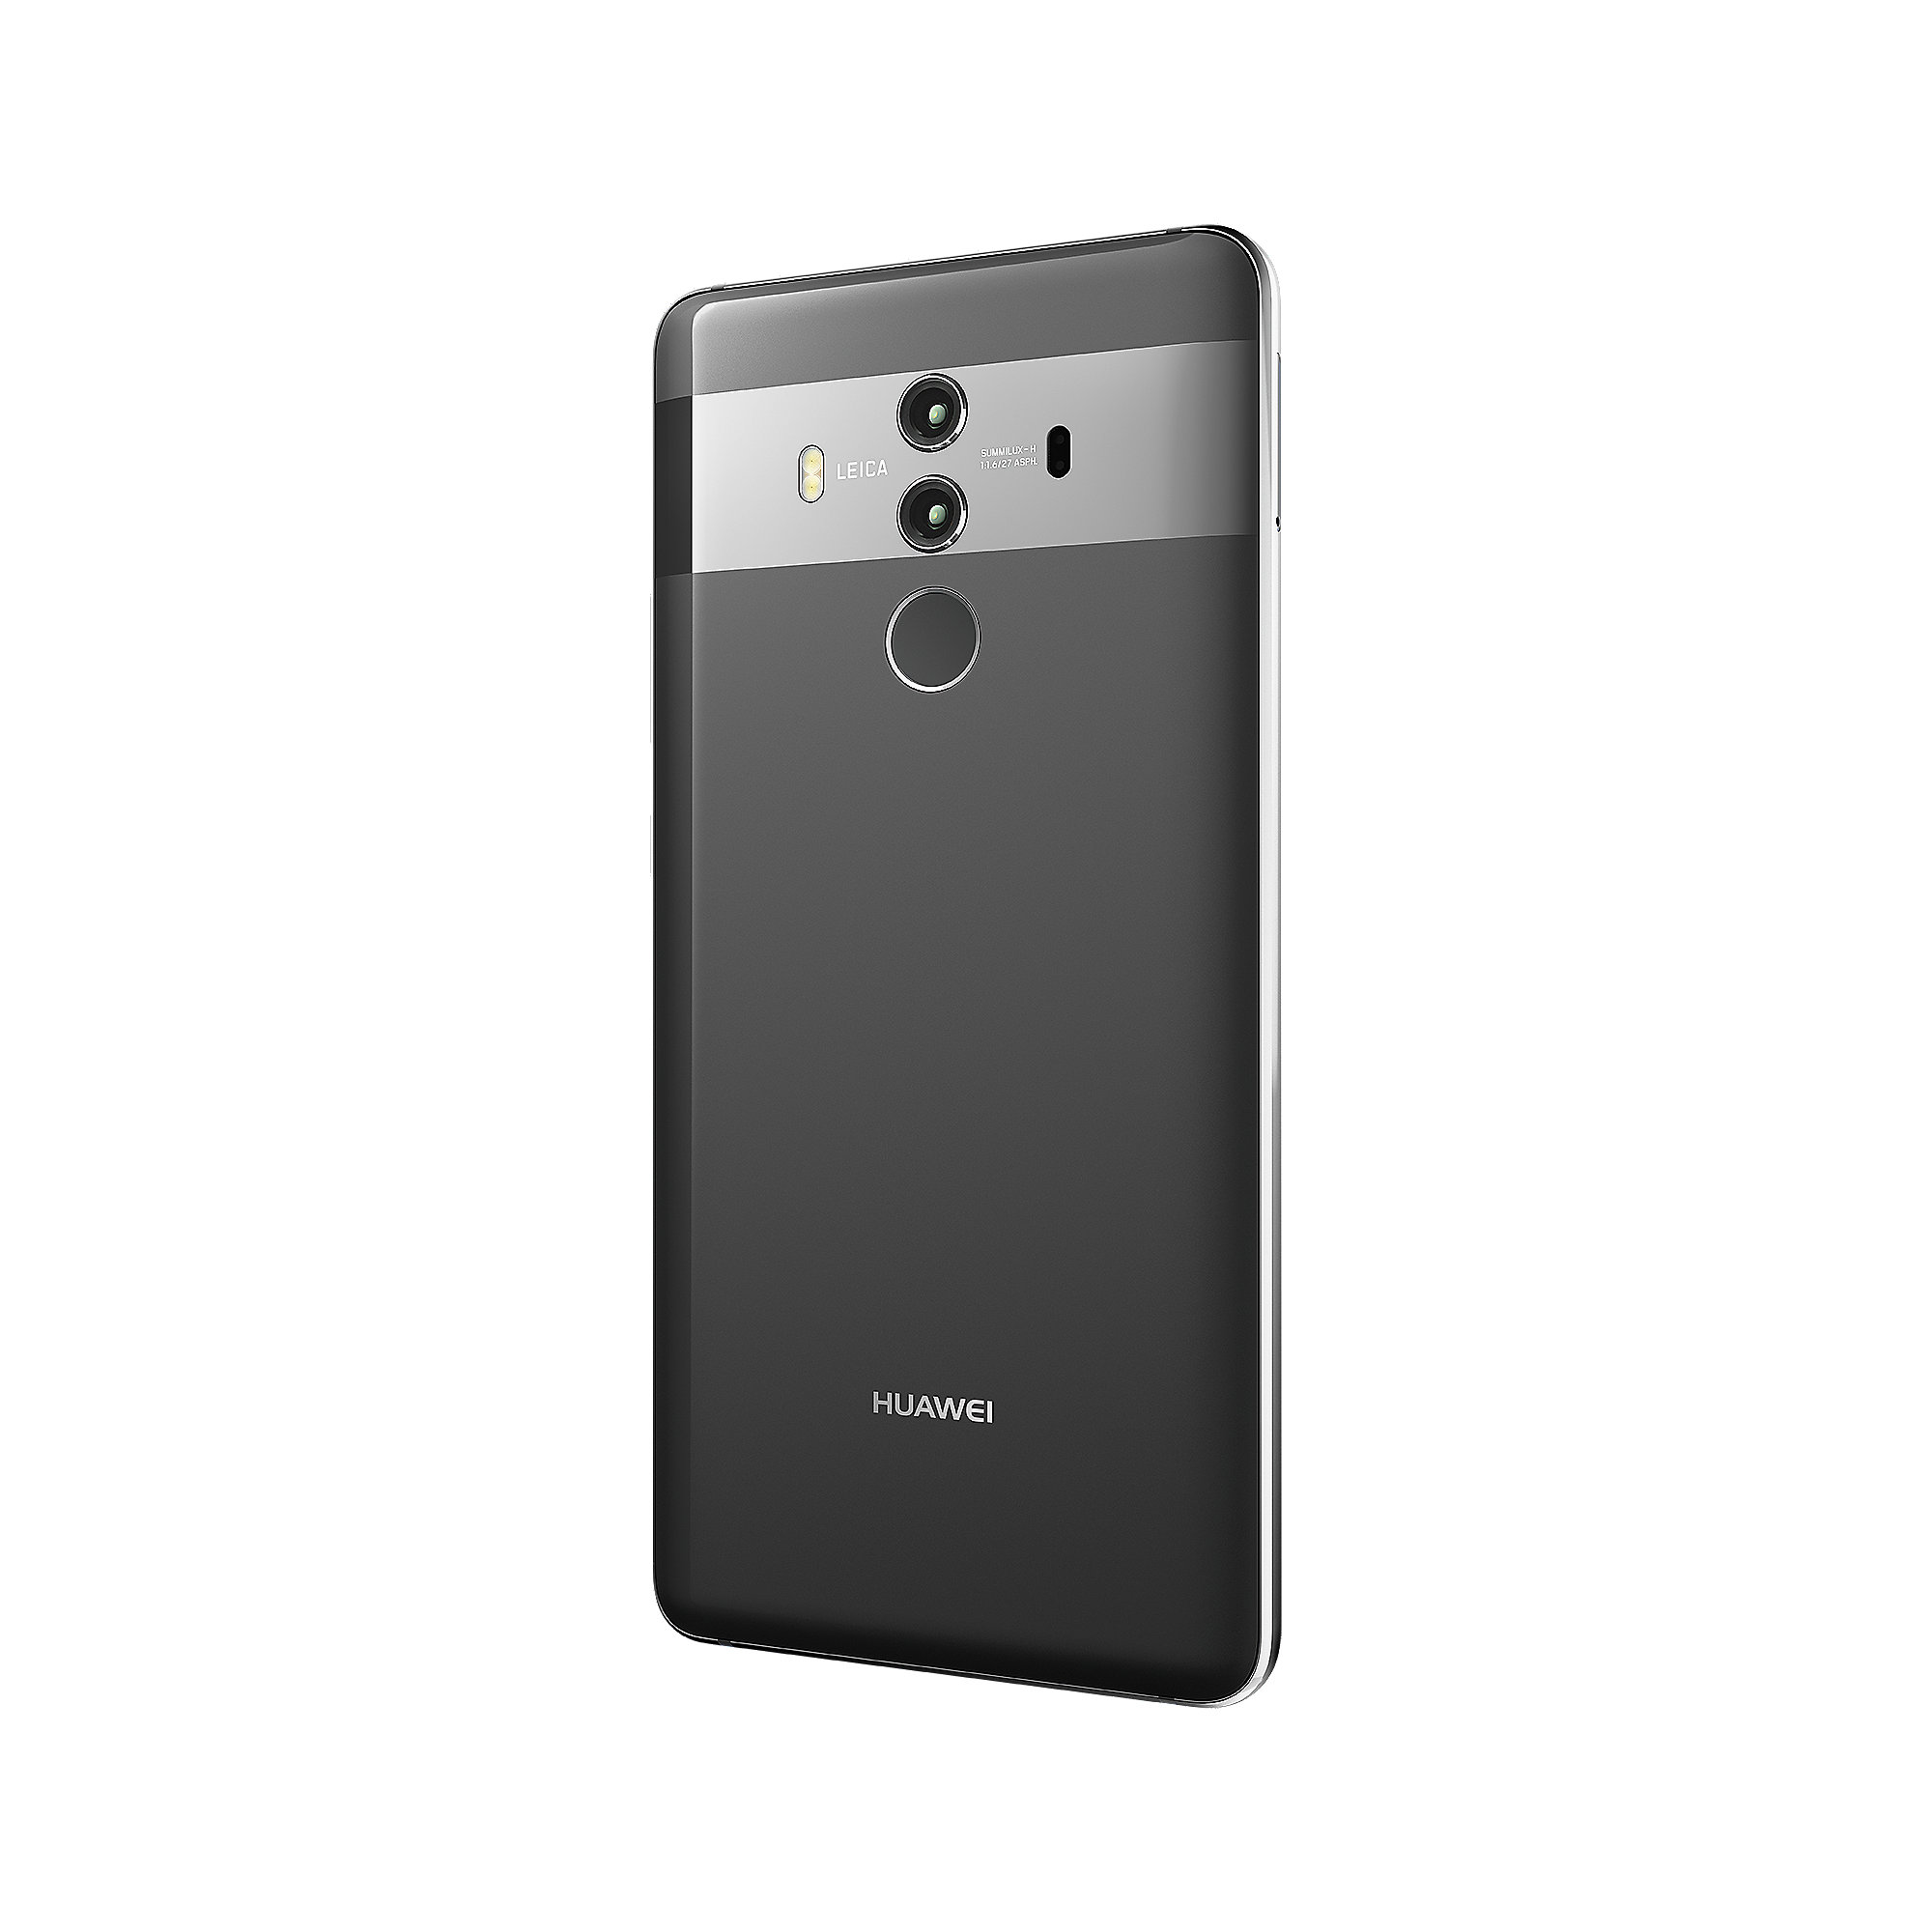 HUAWEI Mate 10 Pro Dual-SIM gray Android 8.0 Smartphone mit Leica Dual-Kamera